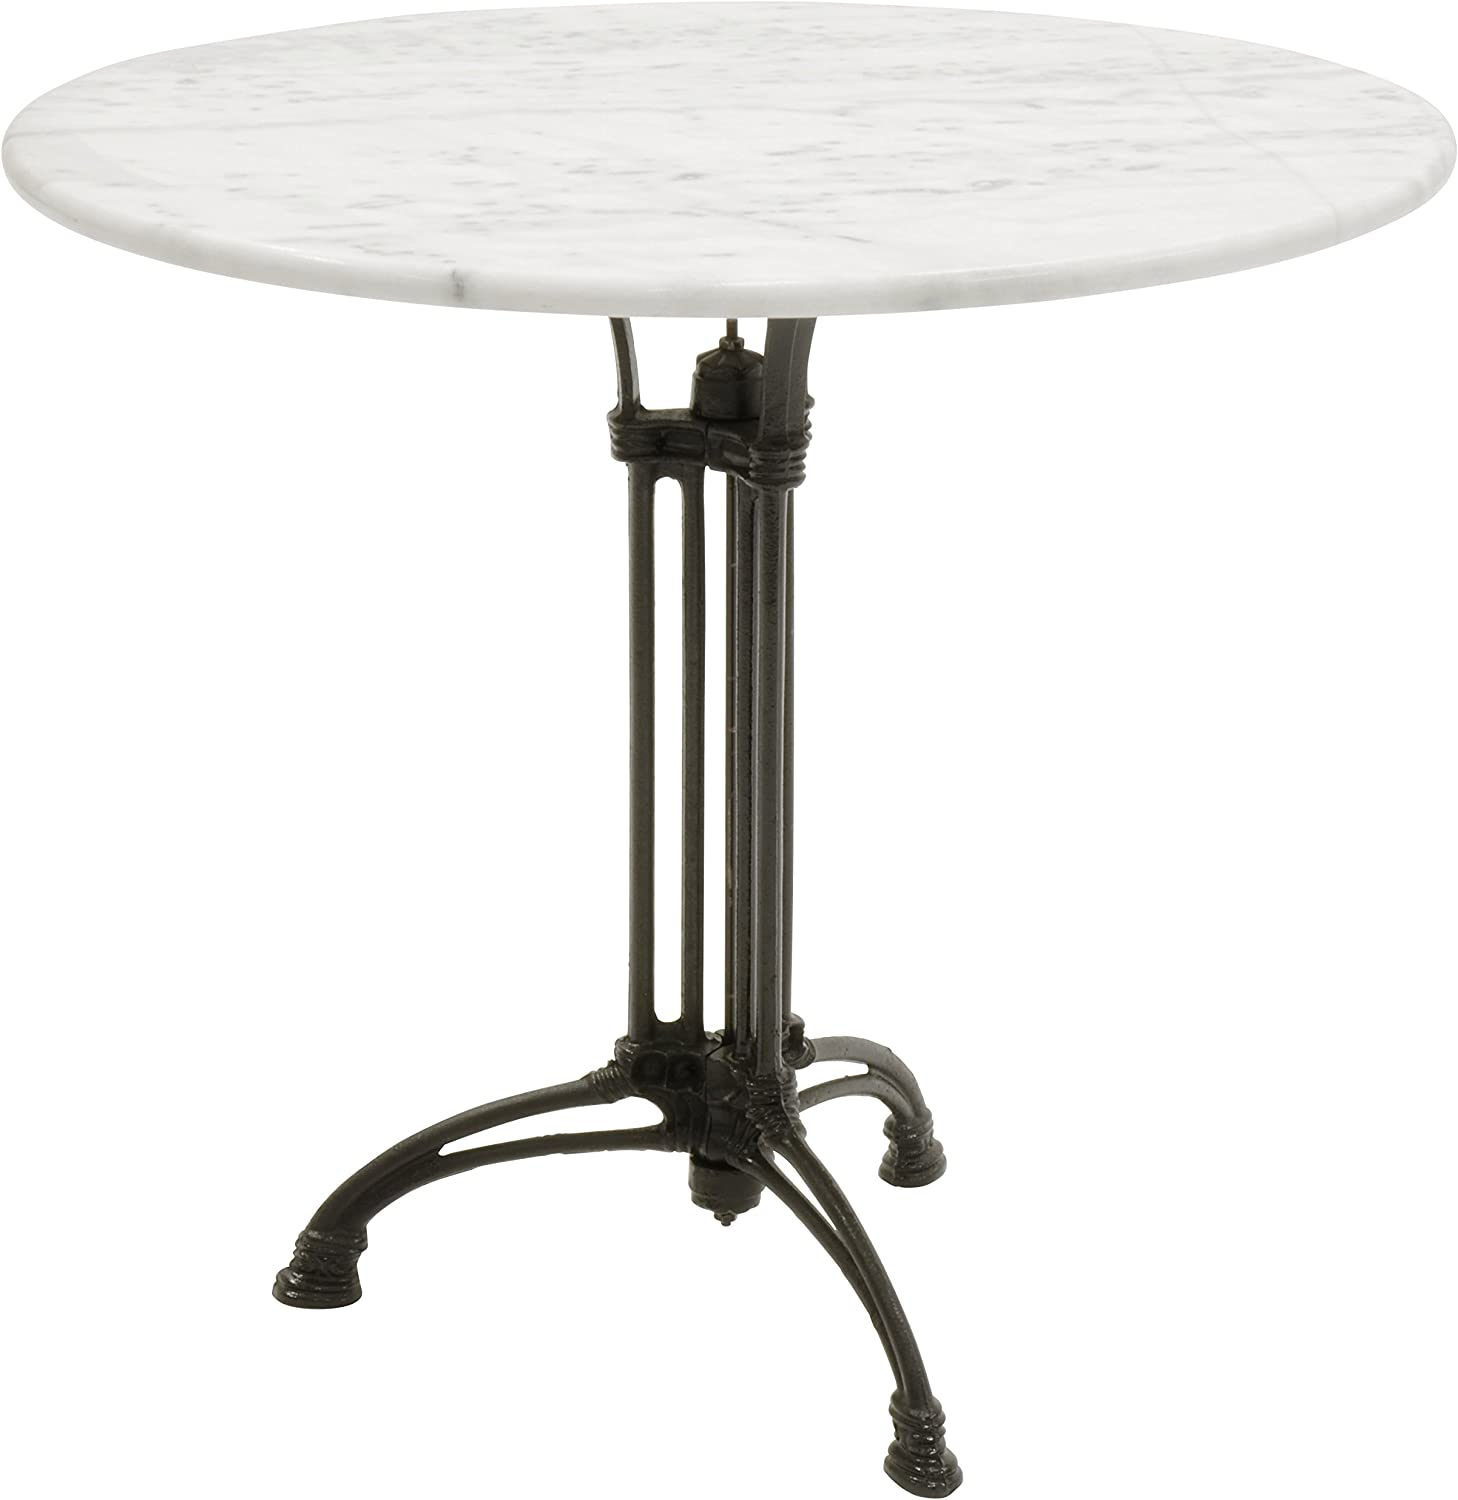 Table En Marbre Blanc Pieds En Fer Forge 80 Cm De Diametre